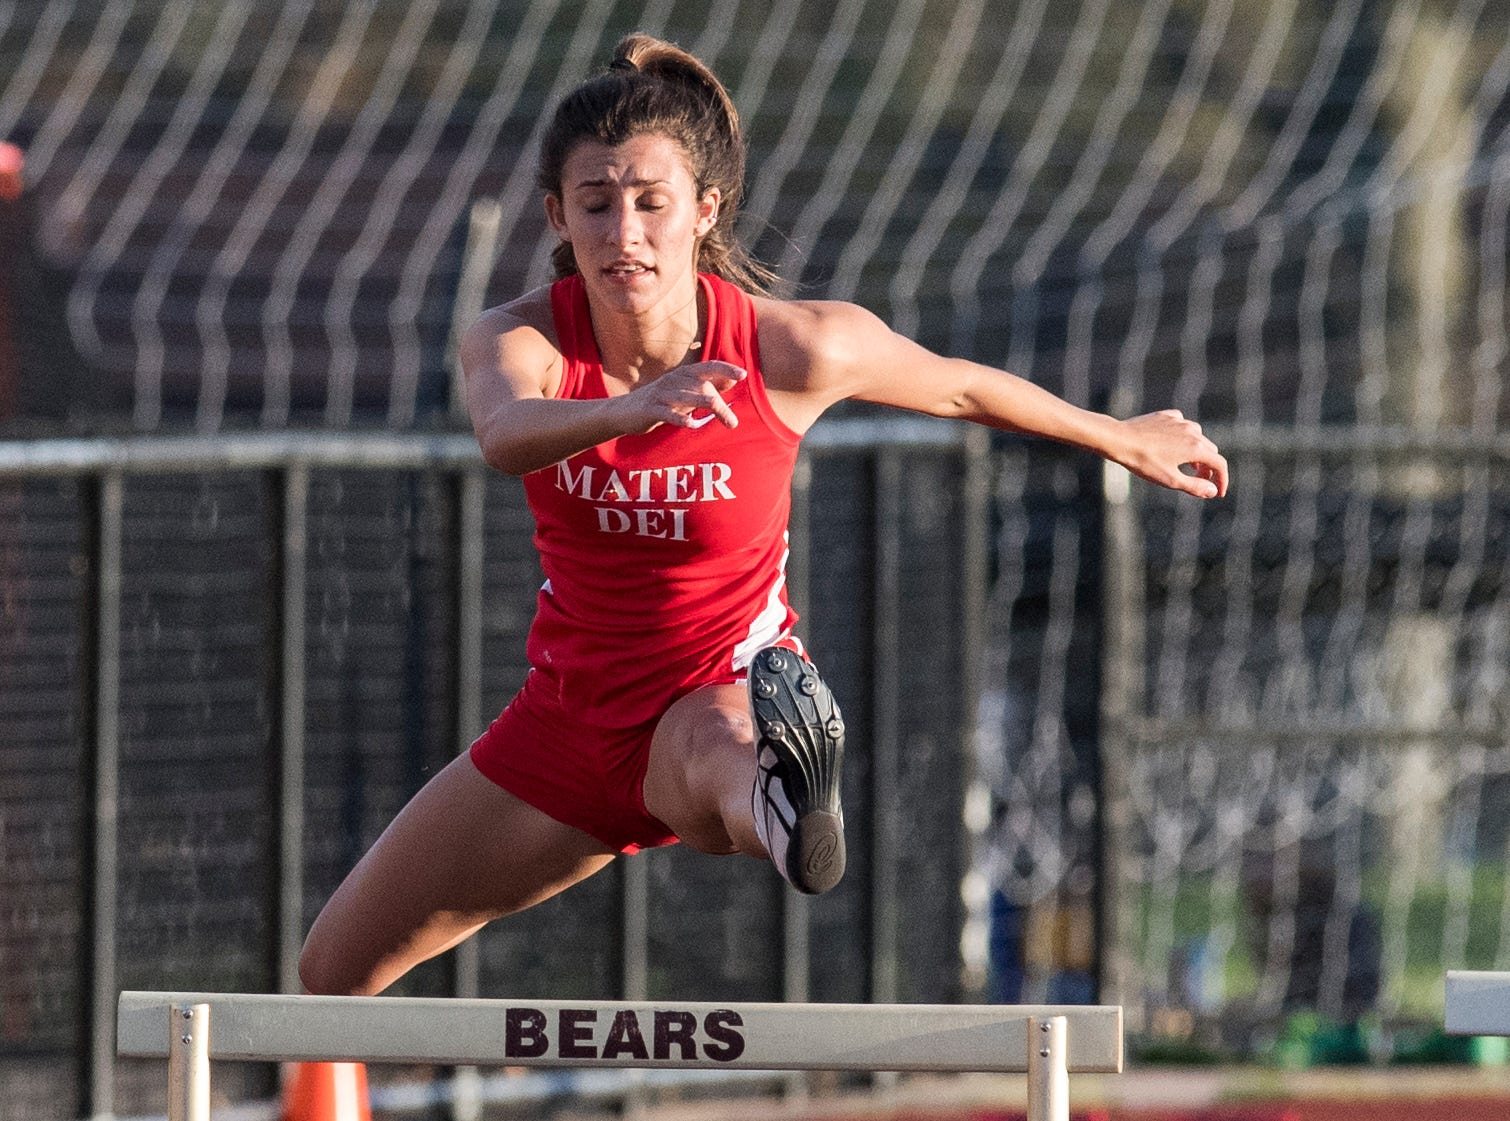 Mater Dei's Victoria Zigenfus clears a hurdle in the girls 300m low hurdle event during the 2019 City Track and Field meet at Central High School Friday, April 12, 2019.  Zingenfus won first place in the event at 47.27 seconds.